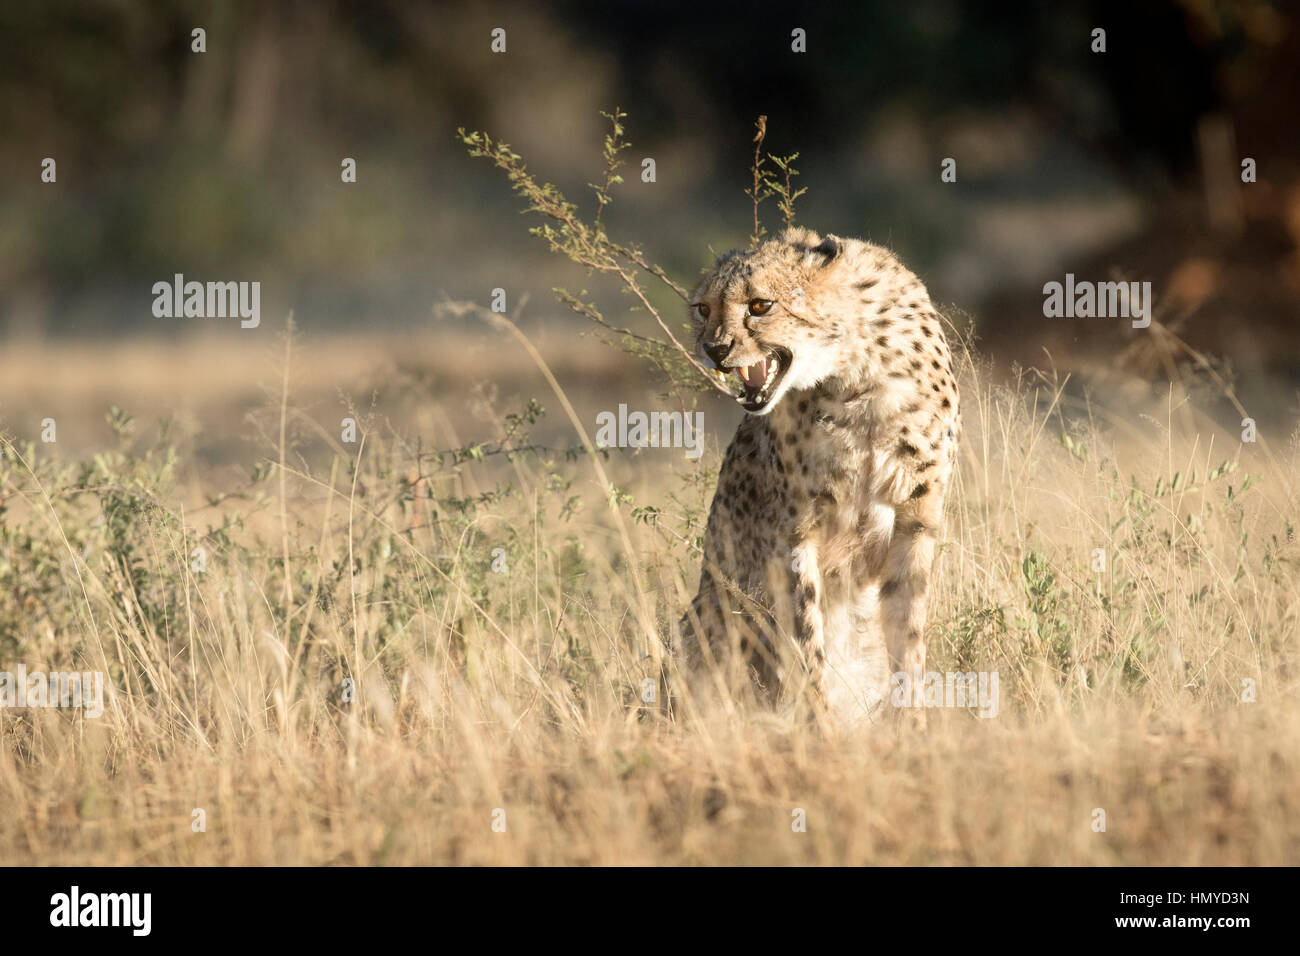 Cheetah snarling - Stock Image